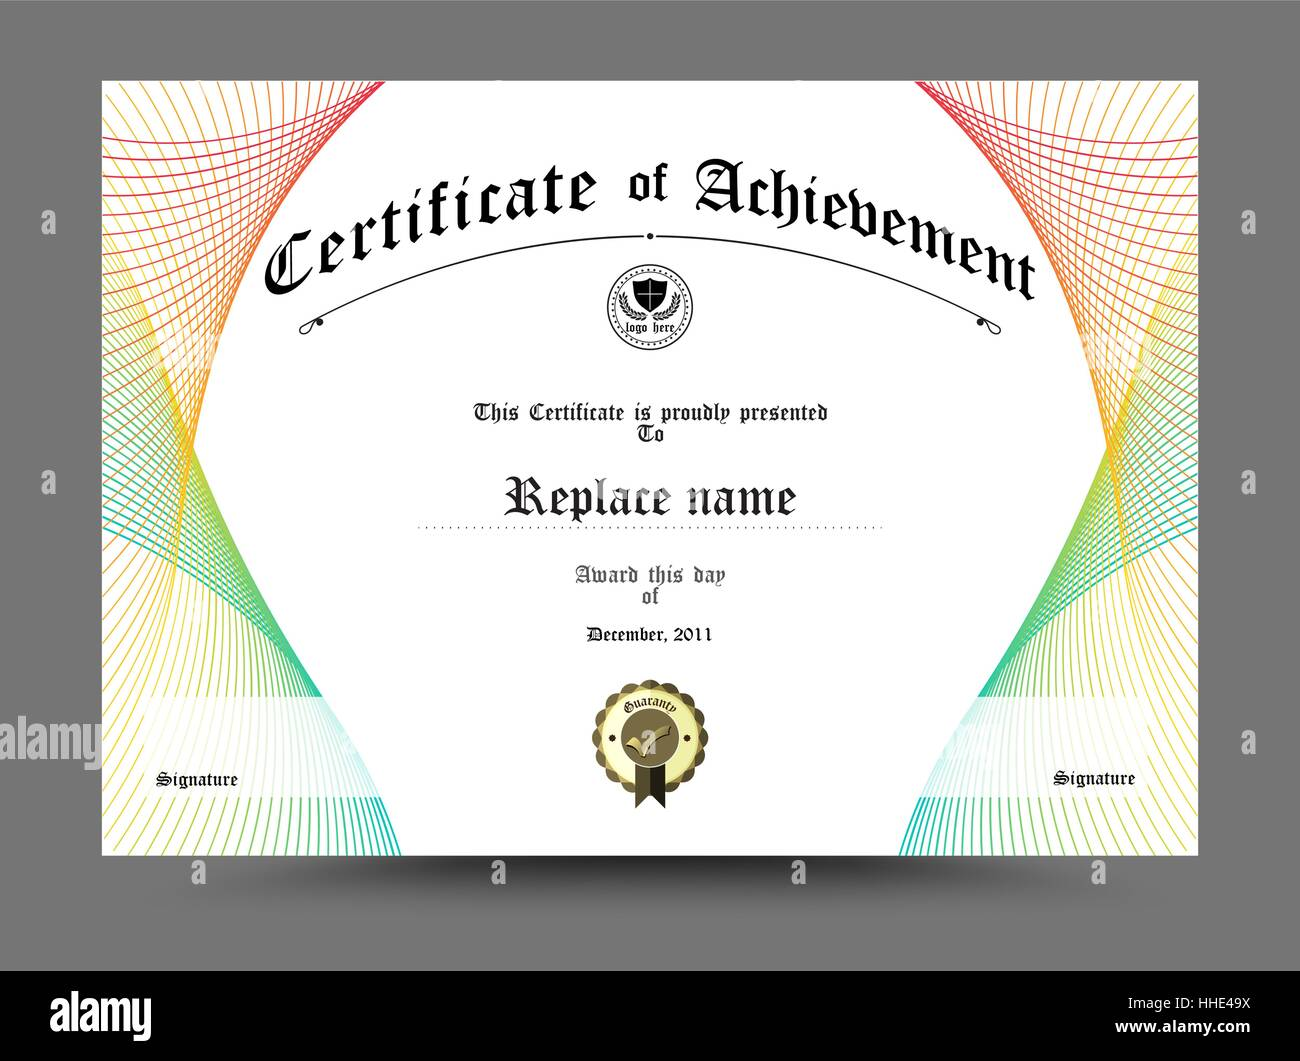 Diploma Border Stock Photos & Diploma Border Stock Images - Alamy